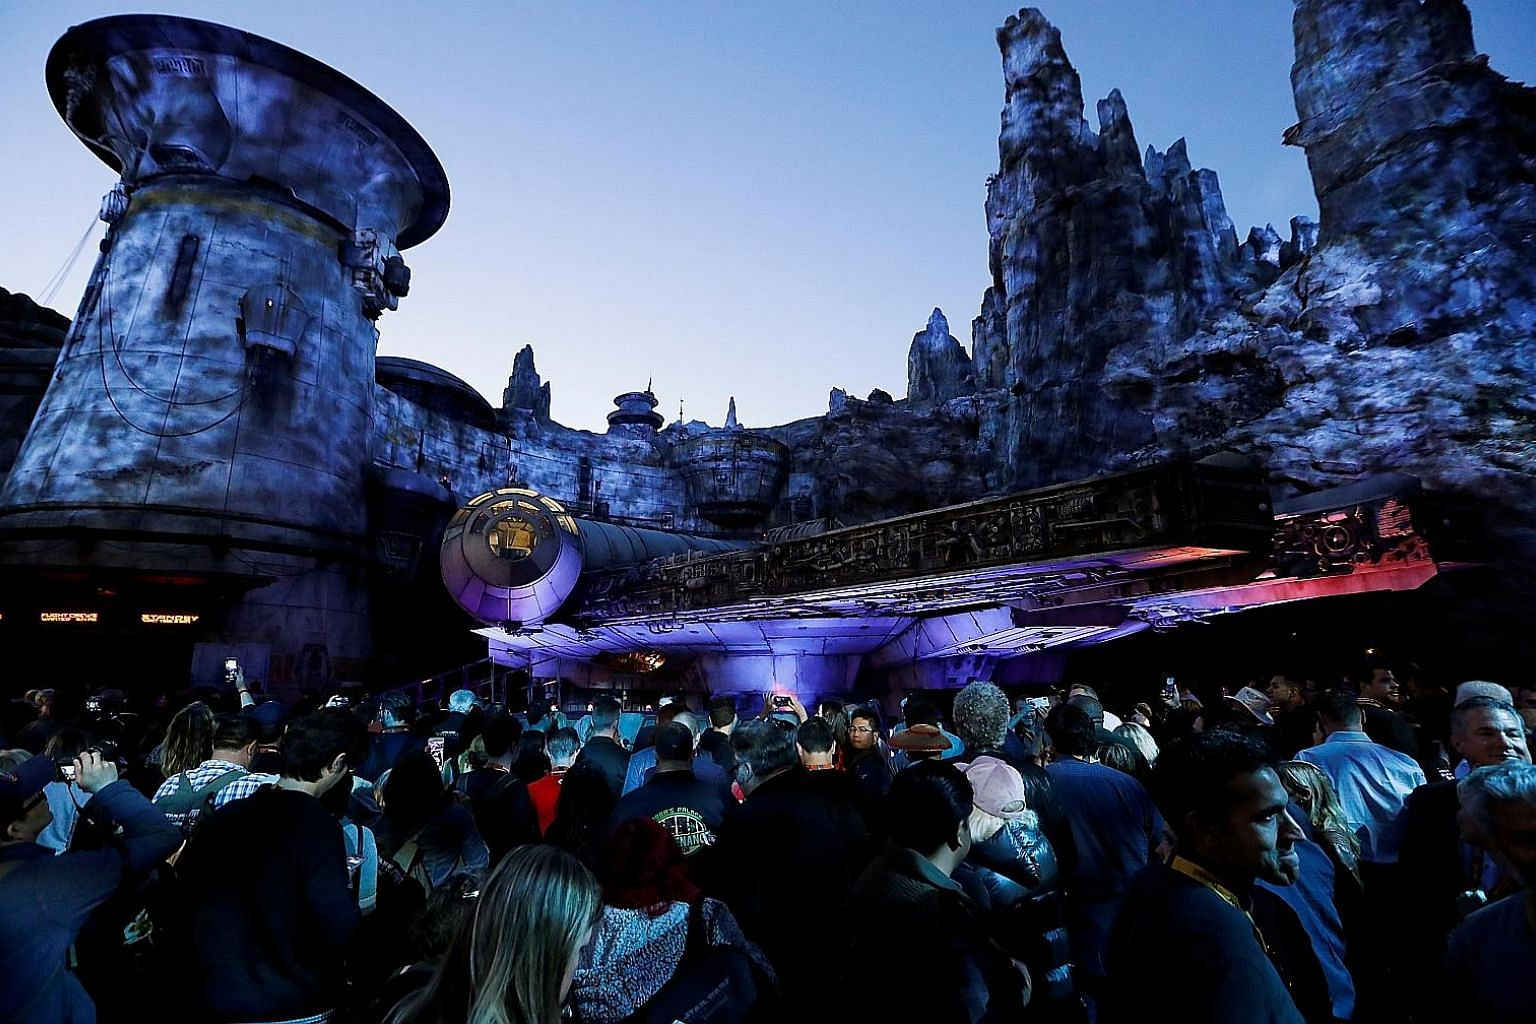 Guests throng Star Wars: Galaxy's Edge in Anaheim, California. Unfettered access to customer data has helped Disney streamline its park logistics.